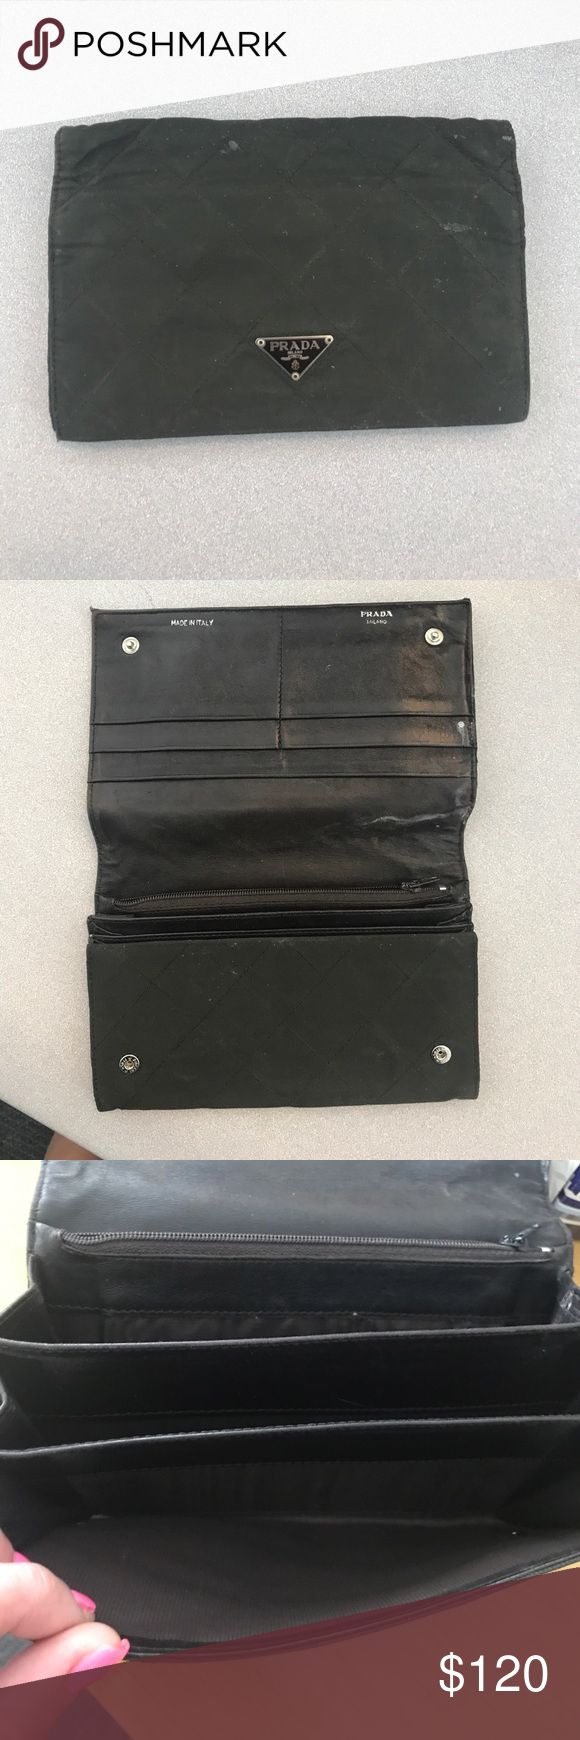 Vintage nylon Prada flap wallet Authentic, Worn in vintage Prada flap wallet. This wallet has been used but is still in good condition. Soft leather inside with 6 card slot pockets on the top side of the wallet flap. Bill pocket and zip coin pocket on the bottom side of the wallet. The exterior of this wallet is a durable nylon with original Prada logo on the front. Interior is leather. Do not let the age of this wallet deter you, it is a timeless piece! Prada Bags Wallets